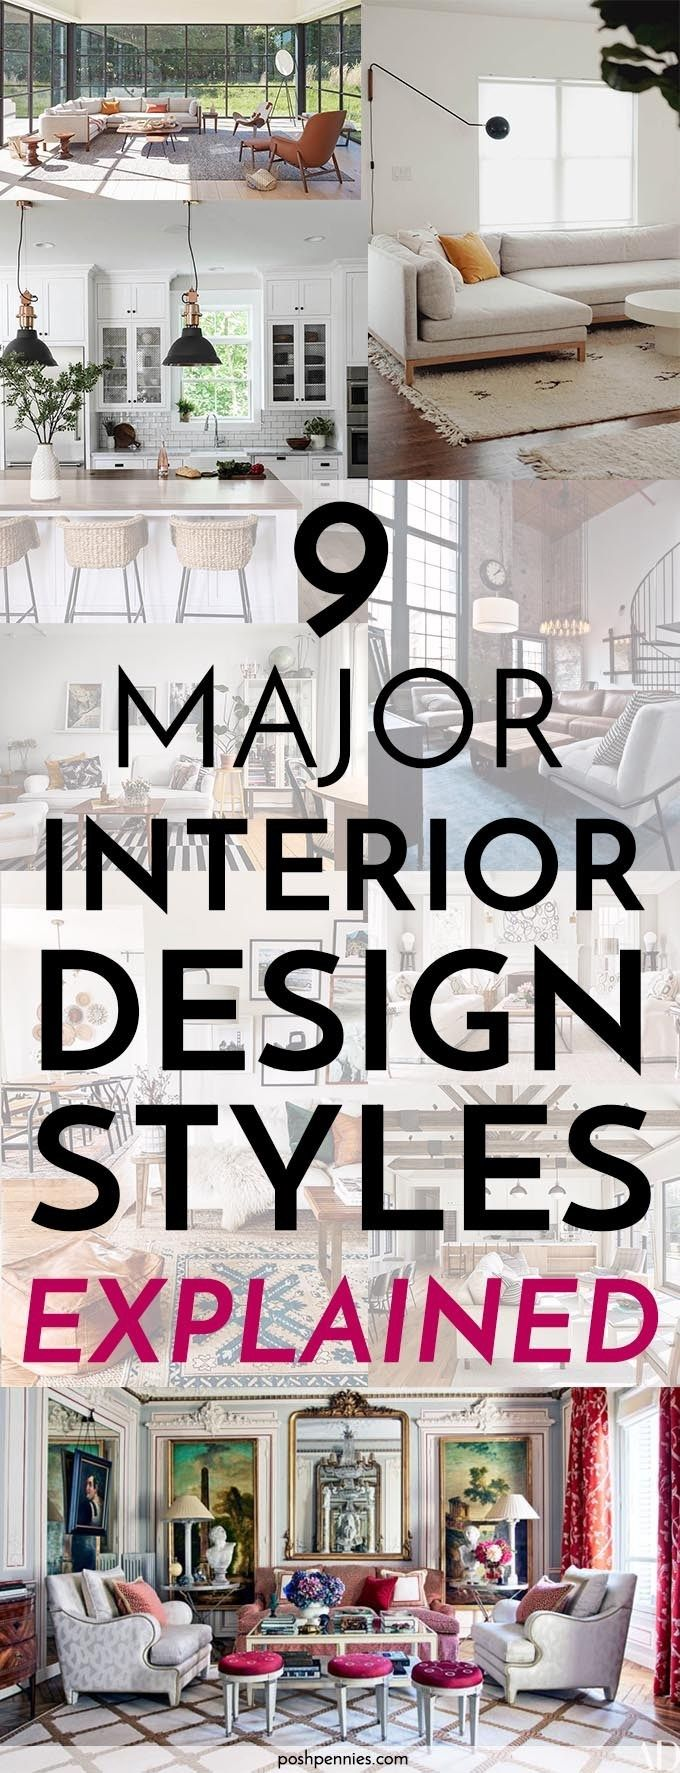 Interior Design Styles For Beginners: 9 Popular Styles Explained | Posh Pennies